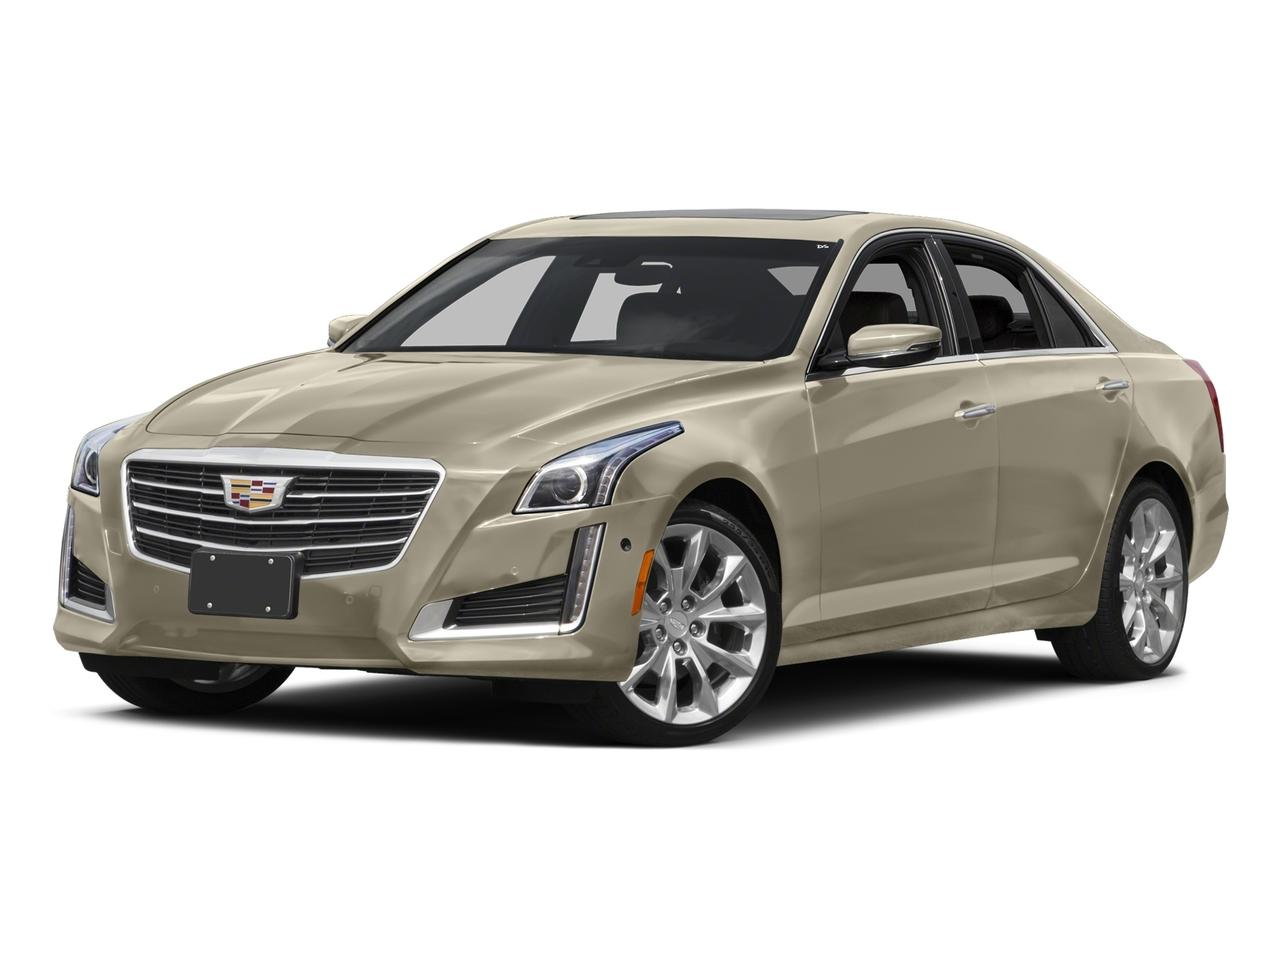 2016 Cadillac CTS Sedan Vehicle Photo in Gainesville, GA 30504